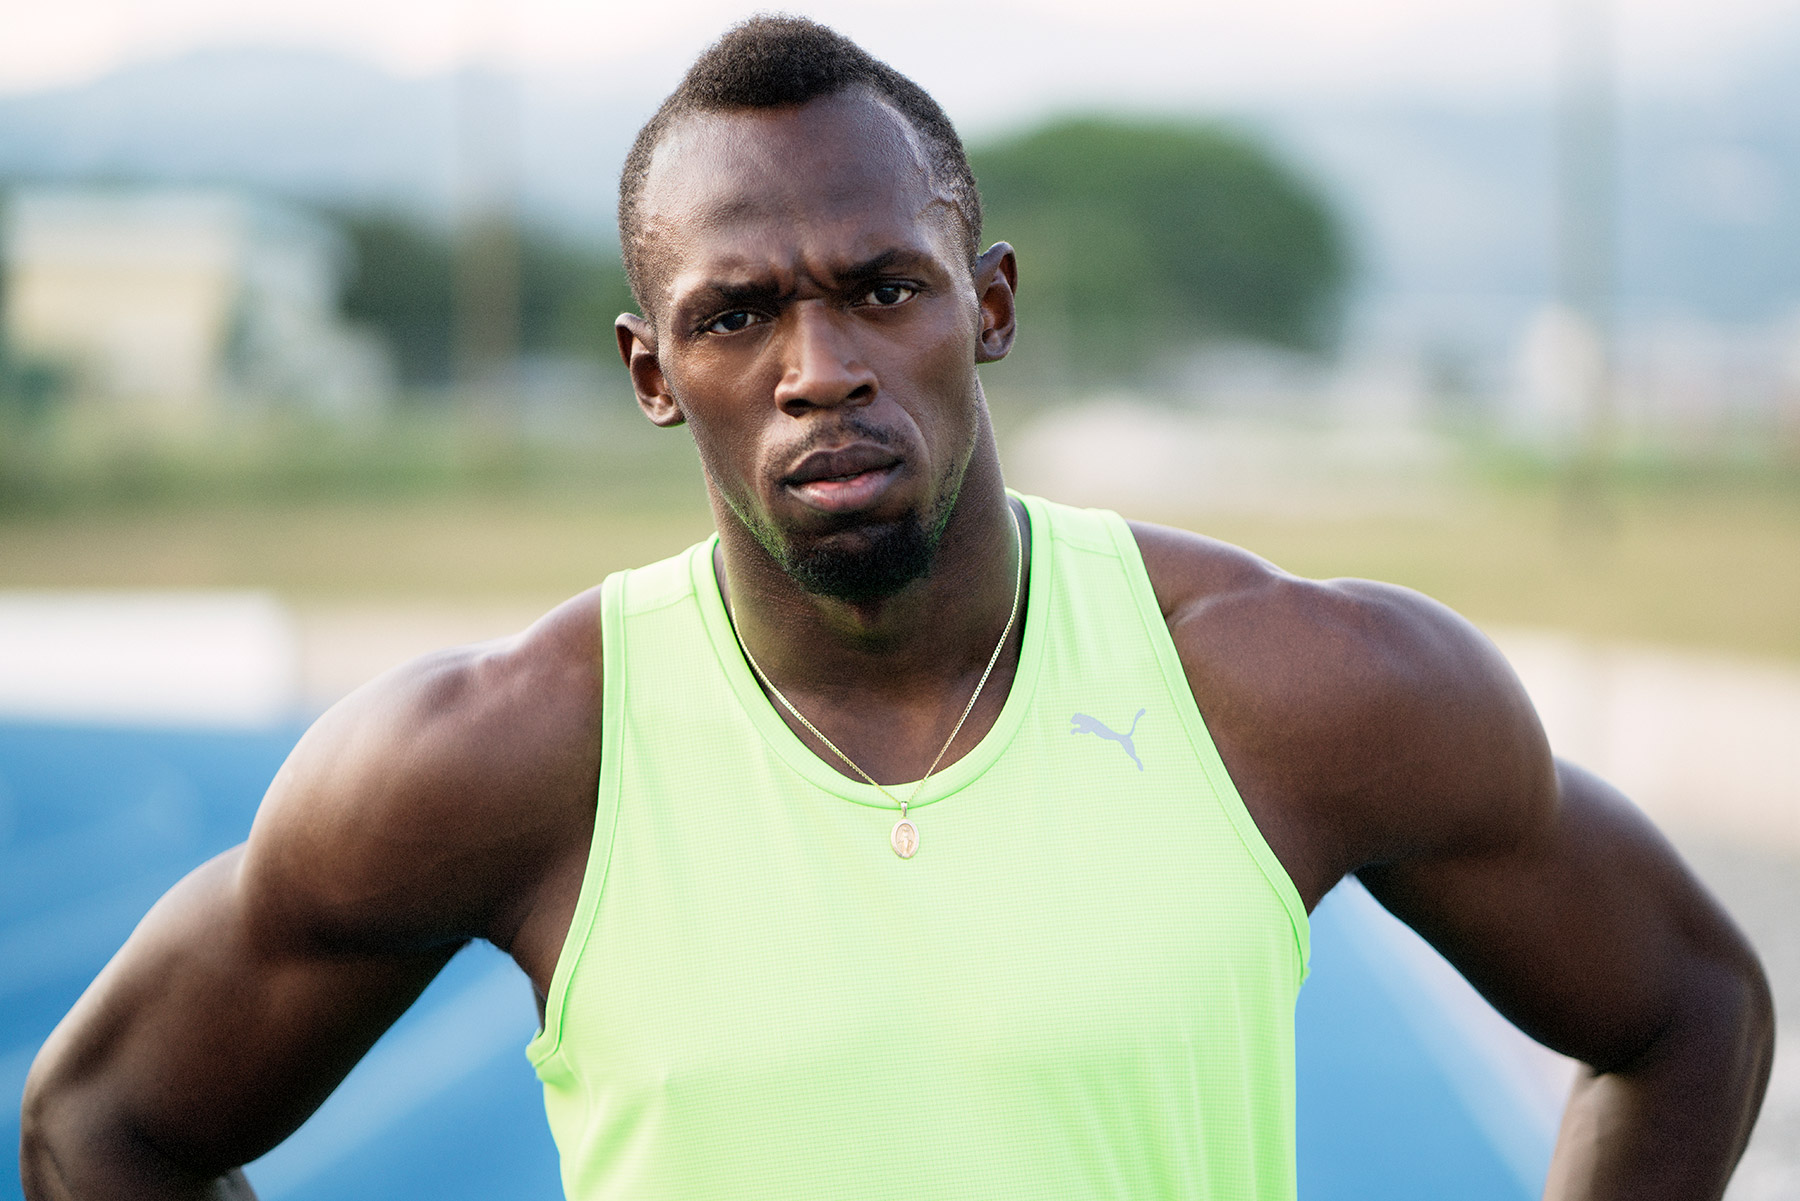 Good Boy Wolf Photographer, filmic portrait,  Usain Bolt runner standing with his hands on hips